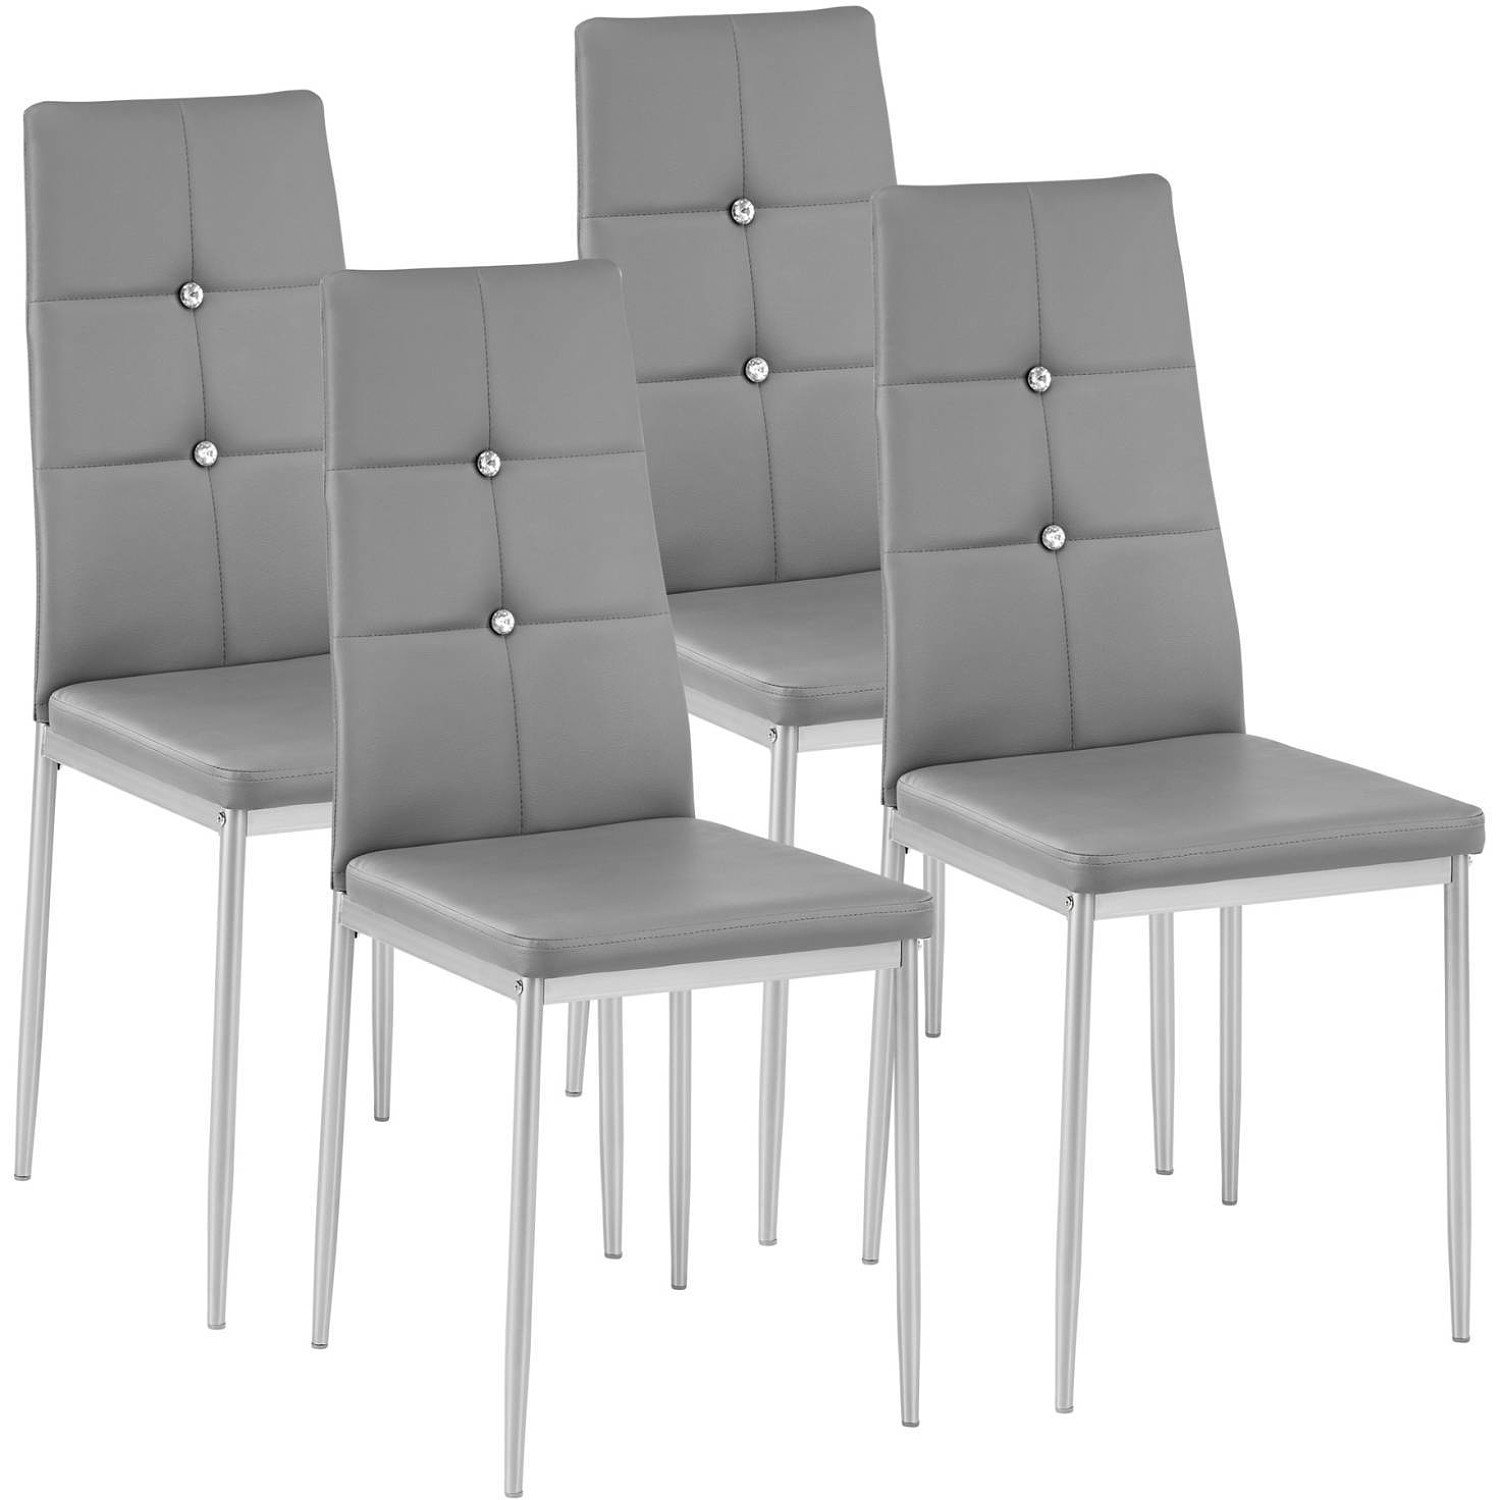 Set of 4 Glam Grey Dining Chairs £113 - 7 FIVE STAR REVIEWS on our website